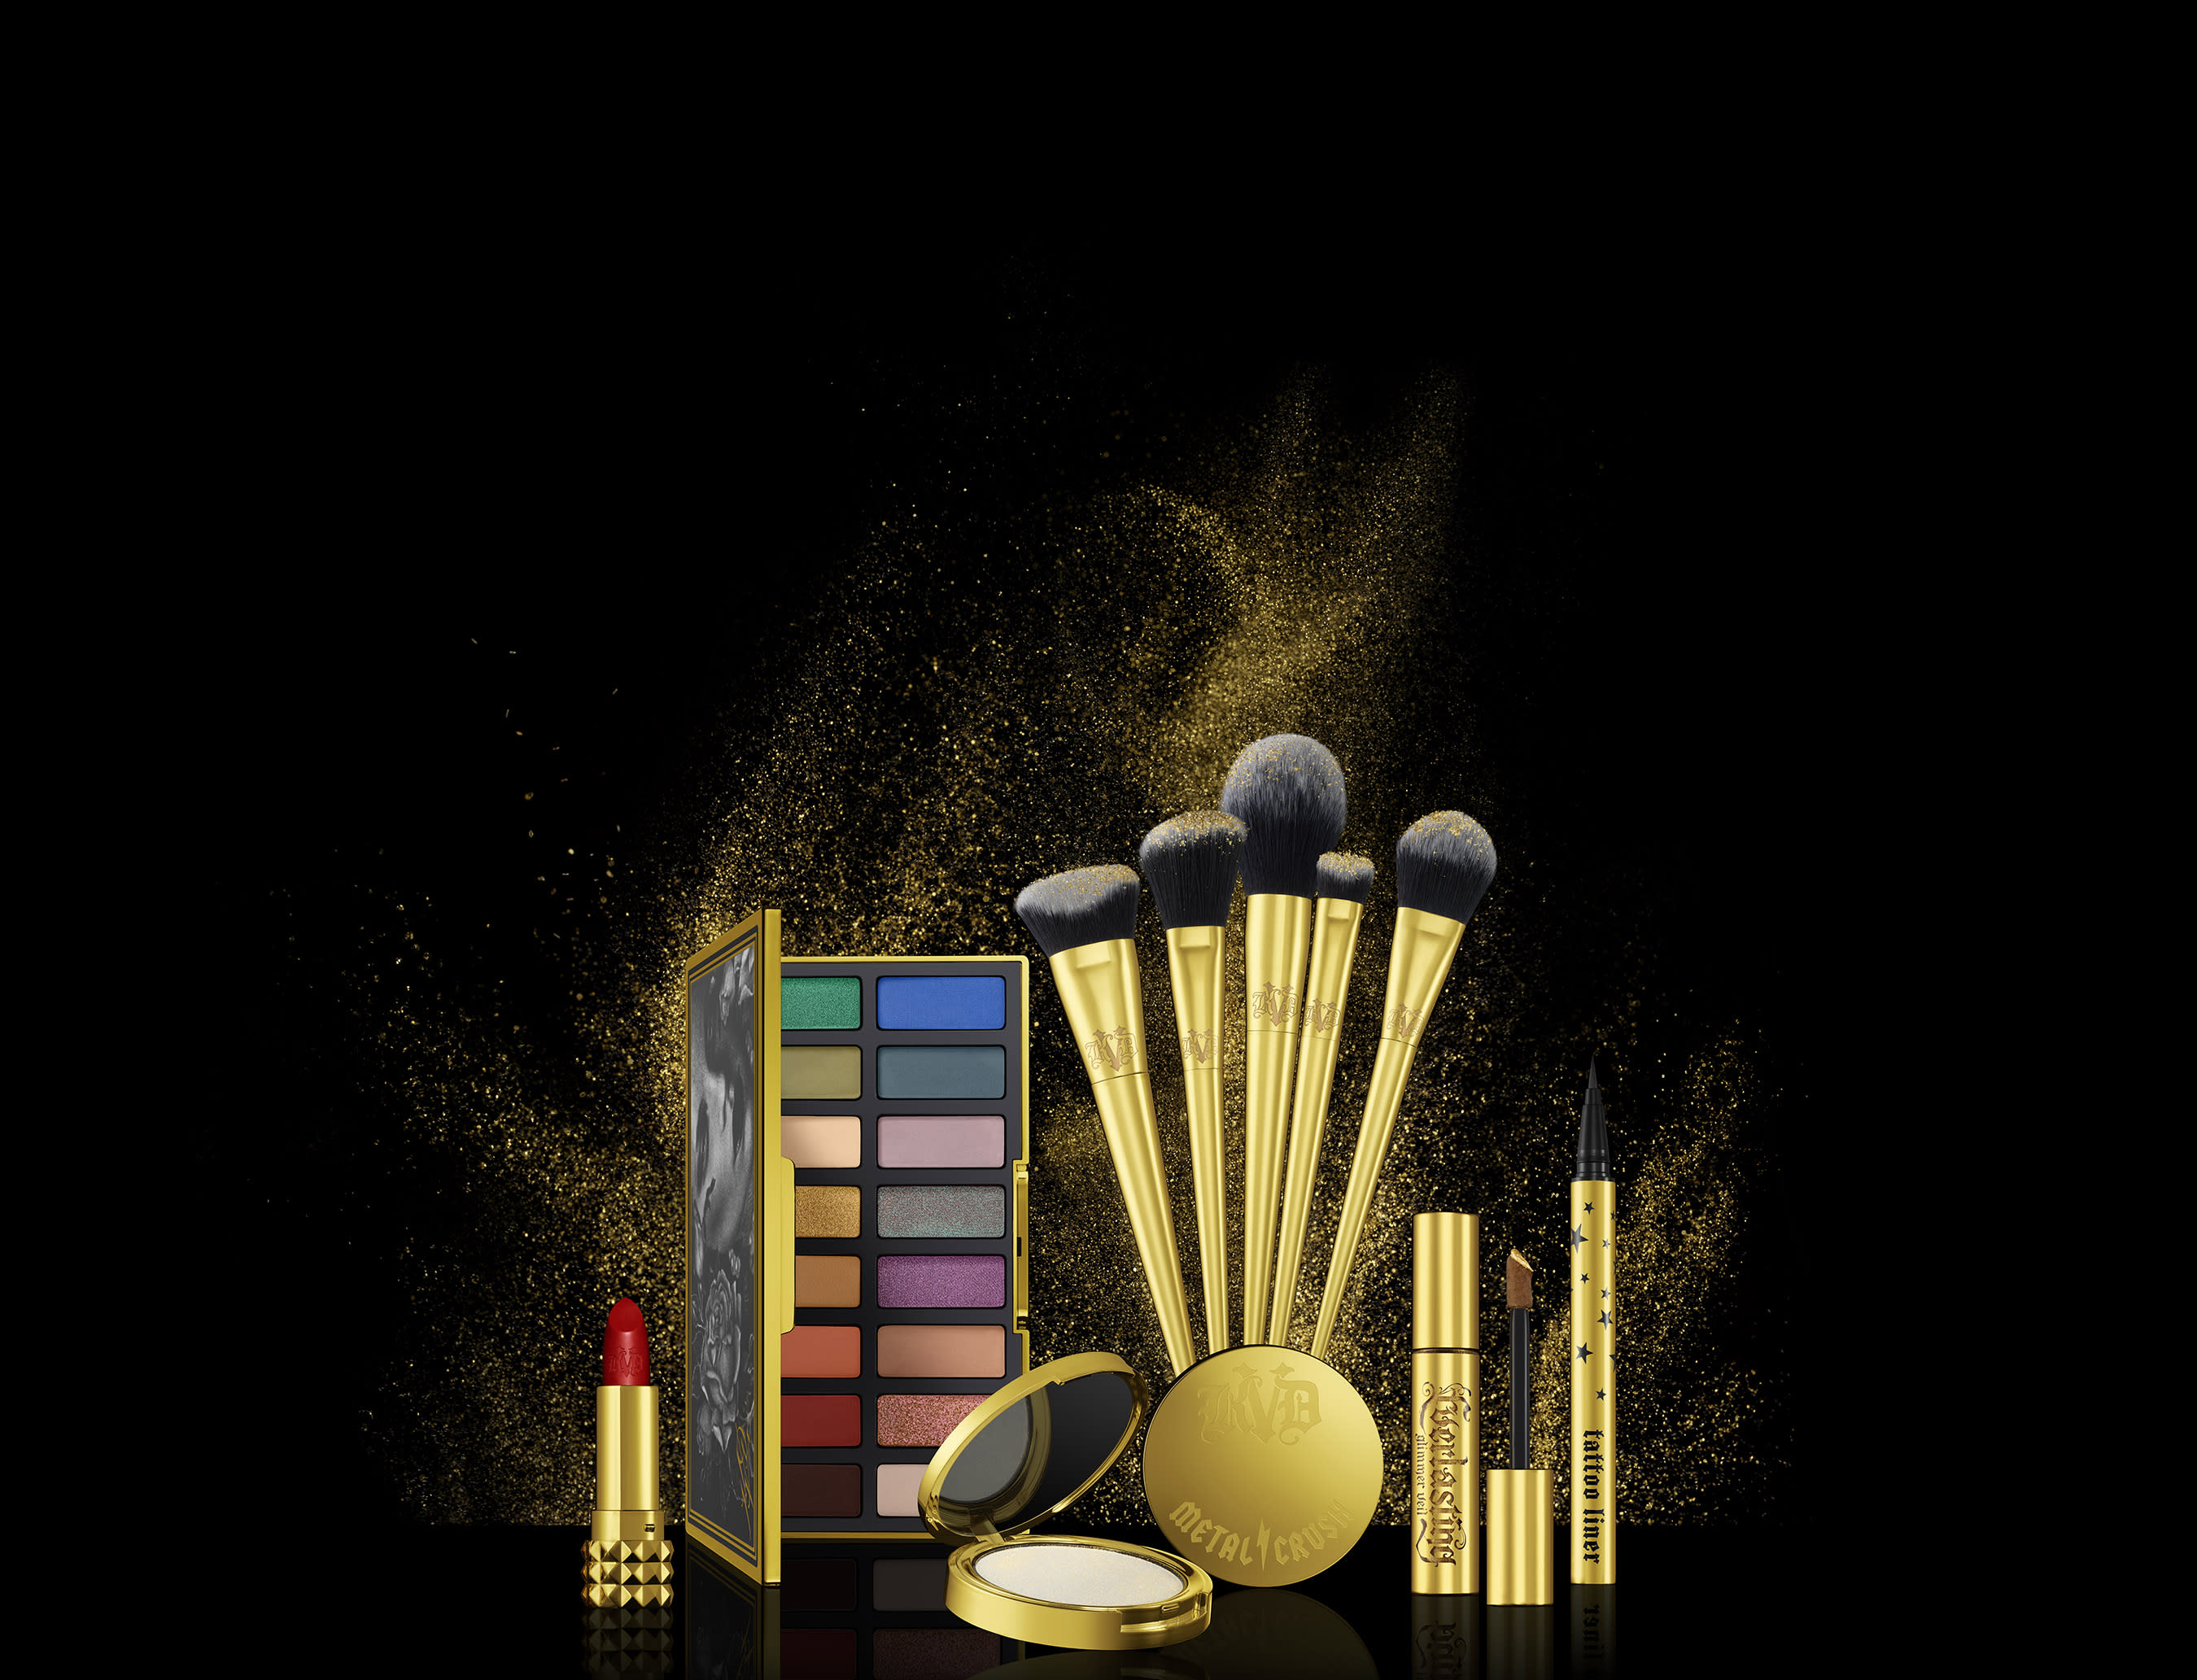 0df7bec672c Kat Von D Beauty Super-Limited 10th Anniversary Collection, Celebrating a  Decade of High Performance, Cruelty-Free Makeup